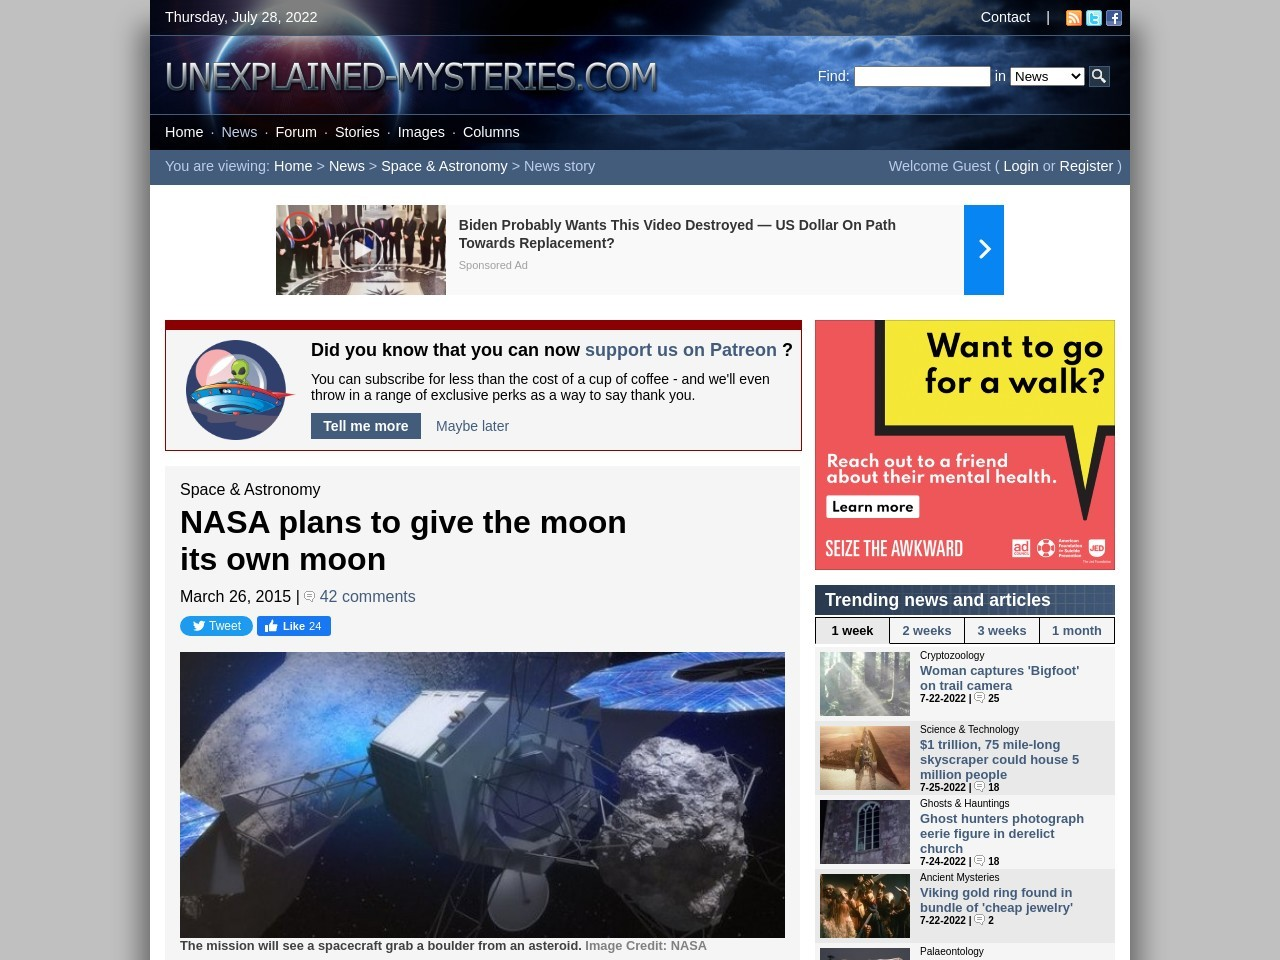 NASA plans to give the moon its own moon